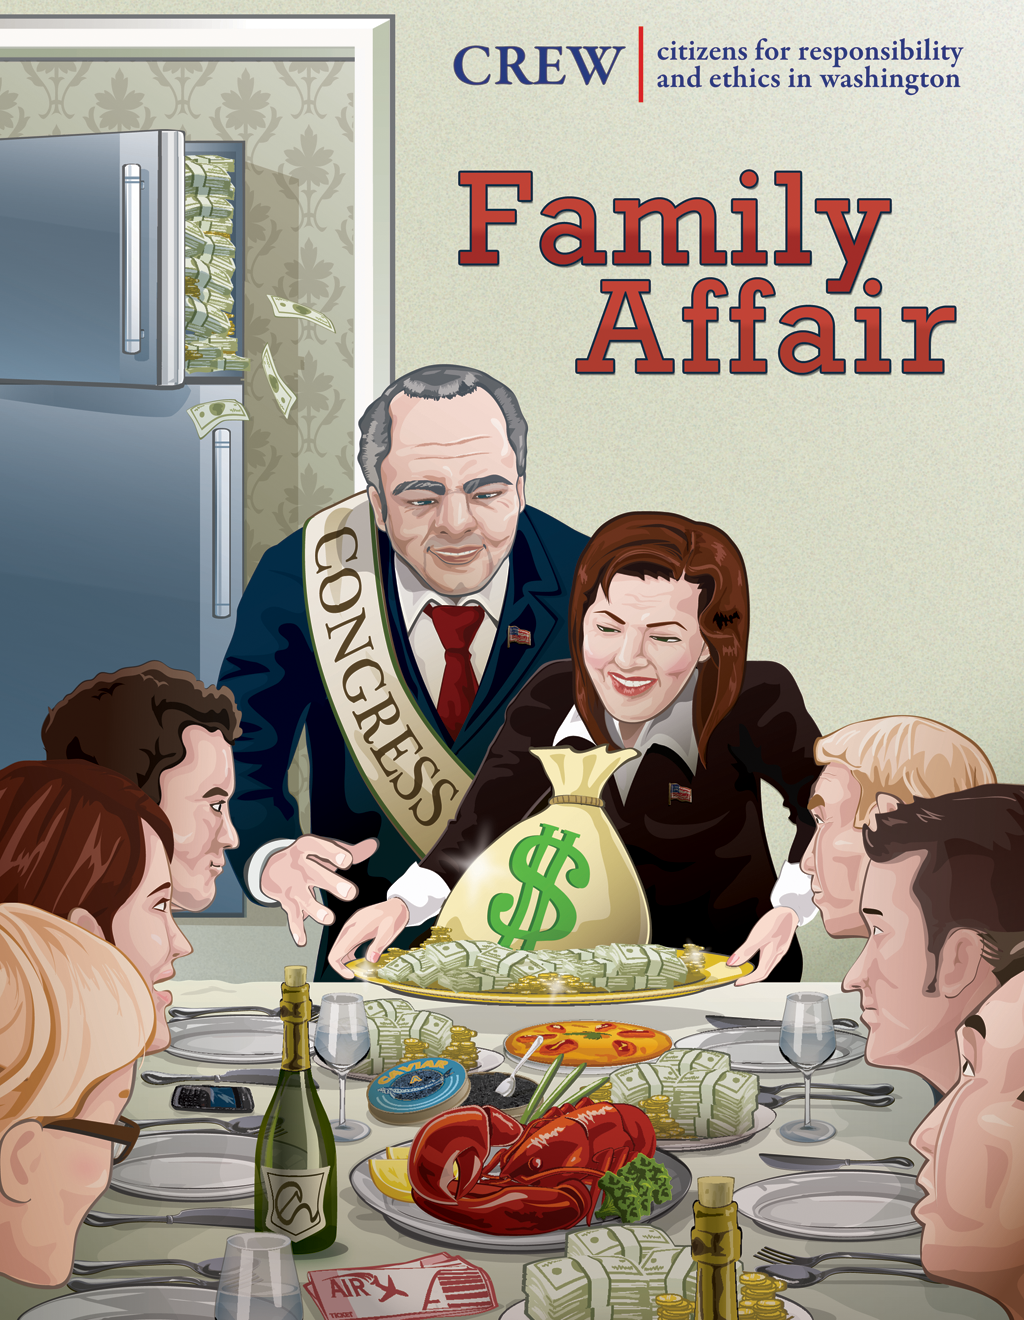 http://2.bp.blogspot.com/-YXJpthZRclM/UYG-XFveyHI/AAAAAAAAWOw/xPYm1blS3ys/s1600/Family_Affair_House_2012_cover_hi_res.png